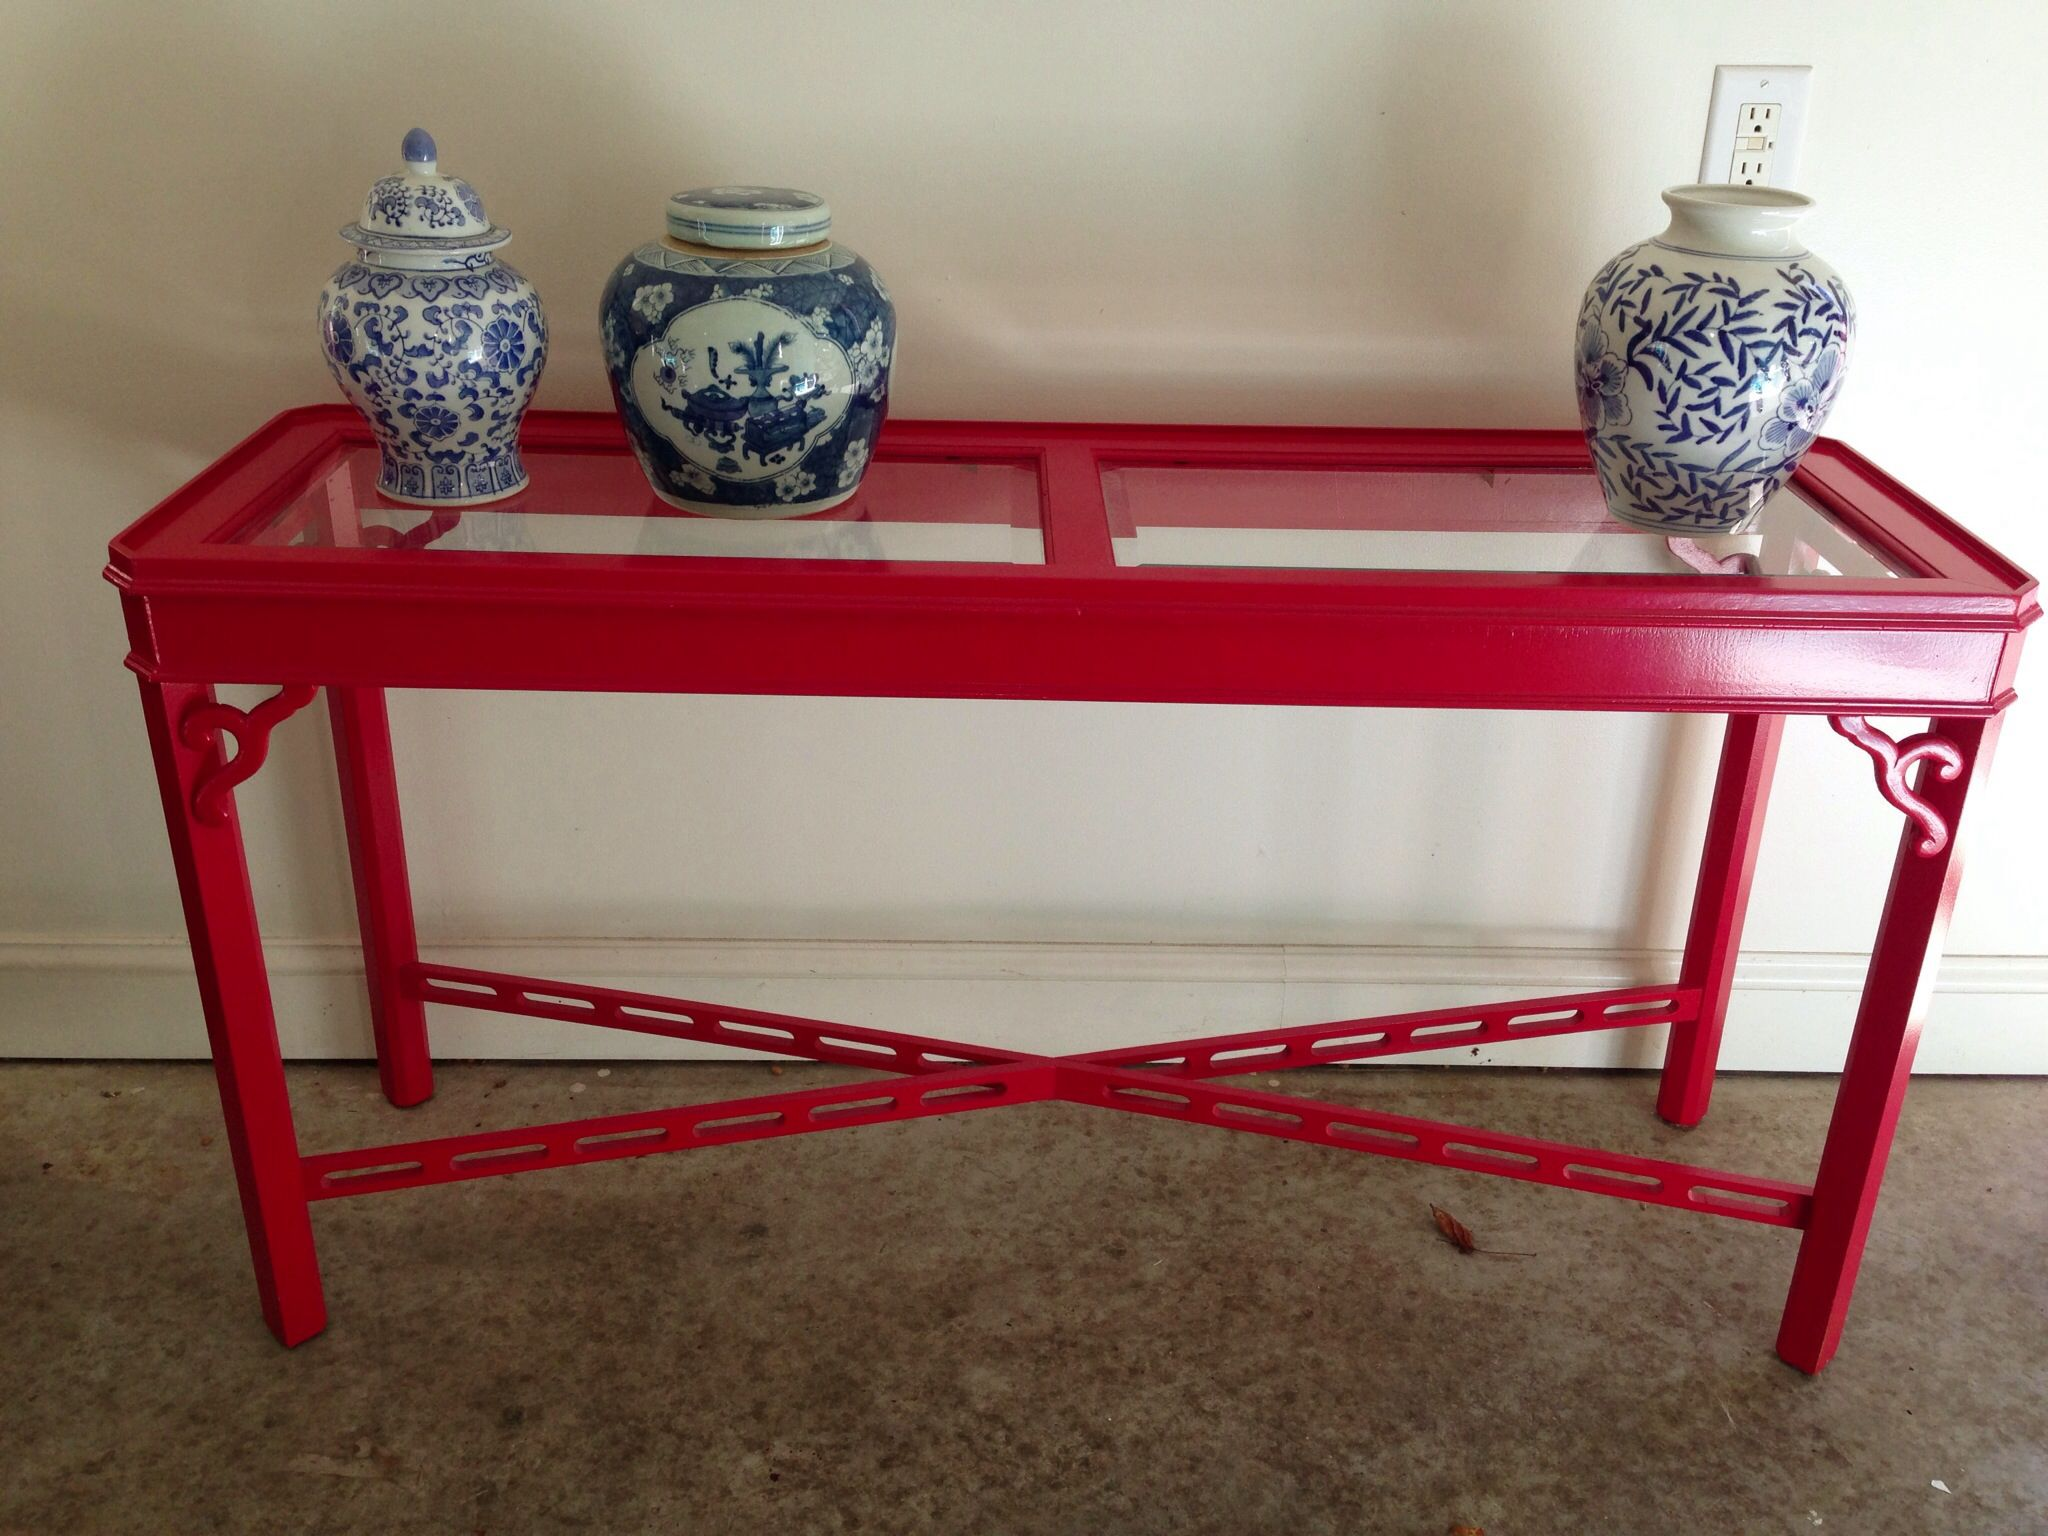 Tremendous Red High Gloss Painted Sofa Console Table Liza Lilly Home Interior And Landscaping Dextoversignezvosmurscom